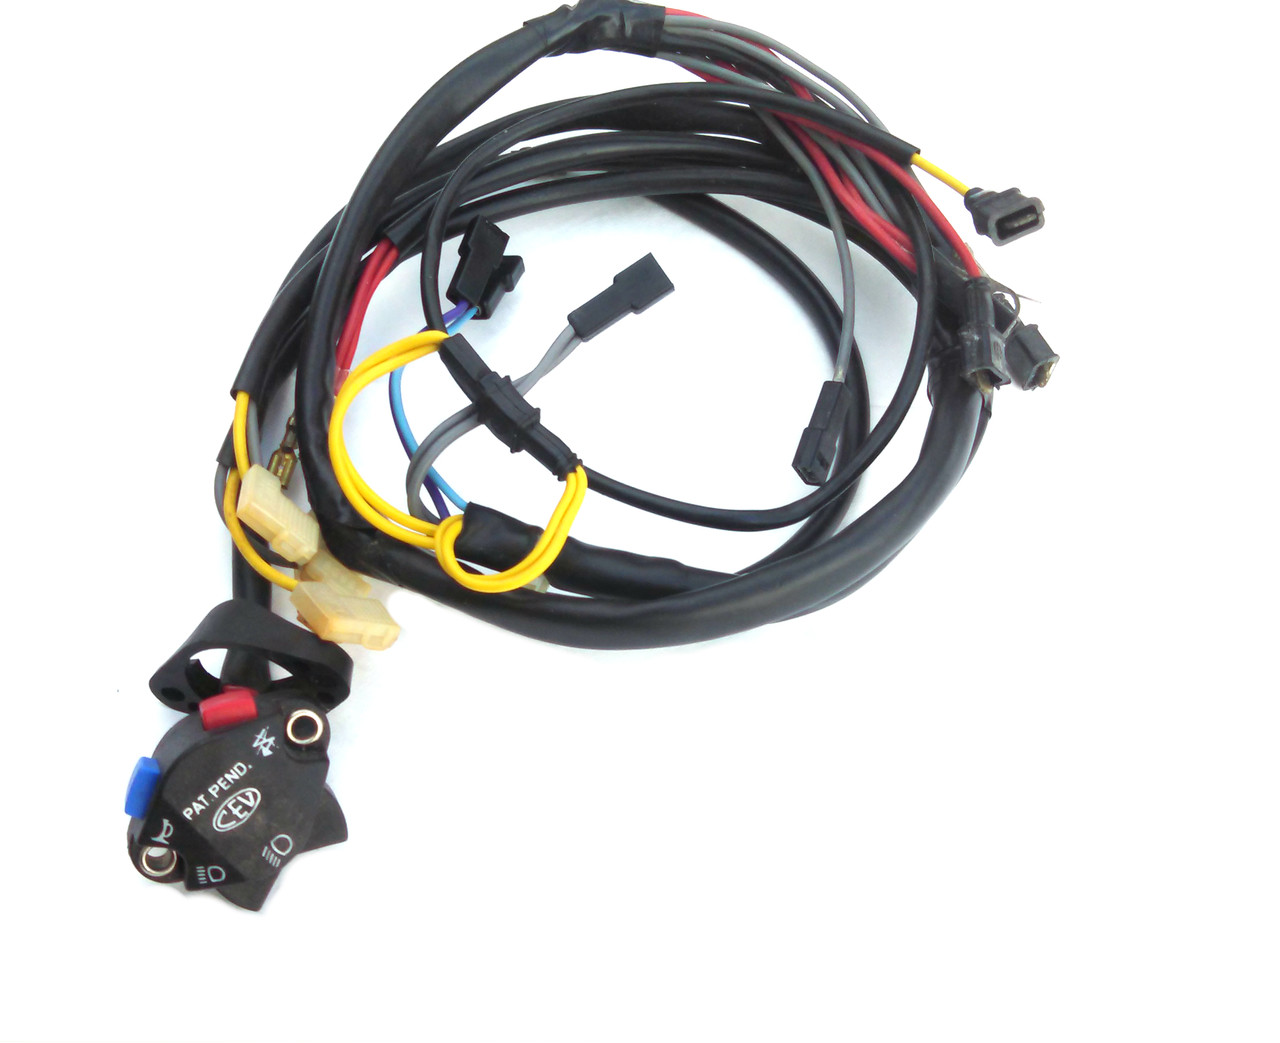 medium resolution of nos foxi ktm moped cev wiring harness and switch